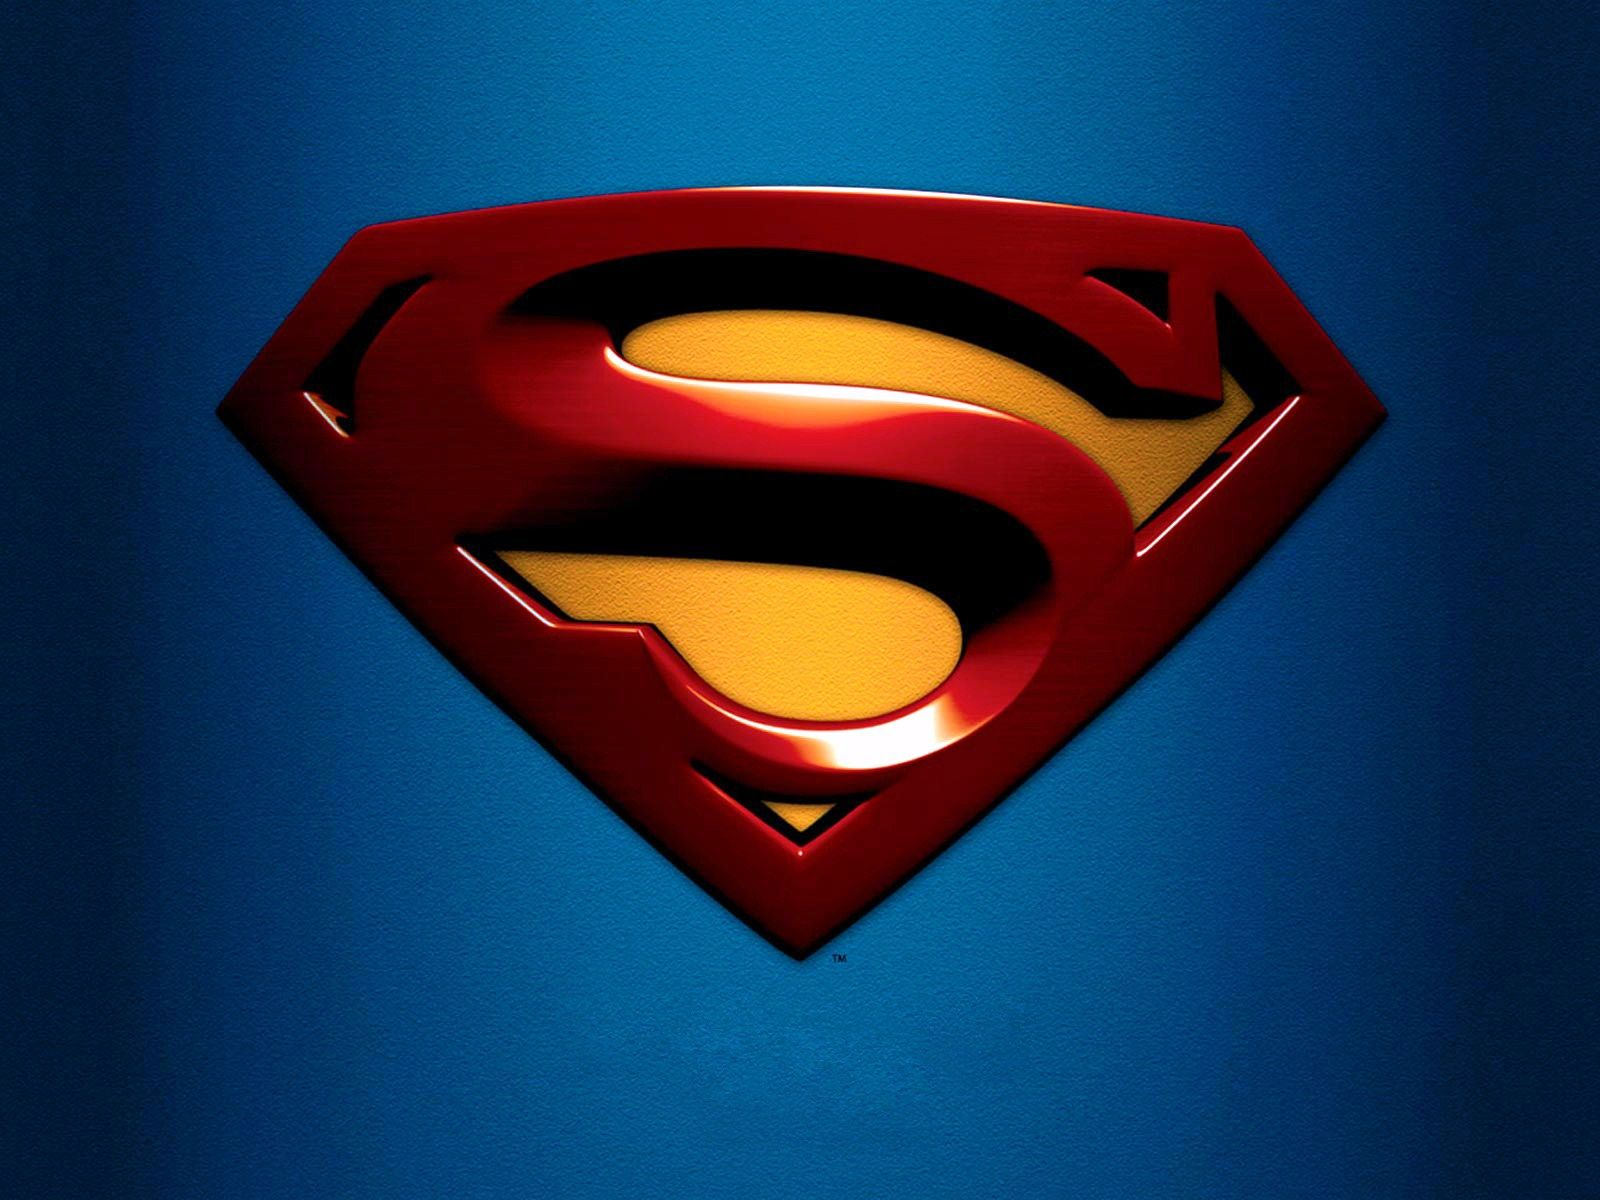 CoolSupermanLogoWallpaperBackground91264.jpg (1600